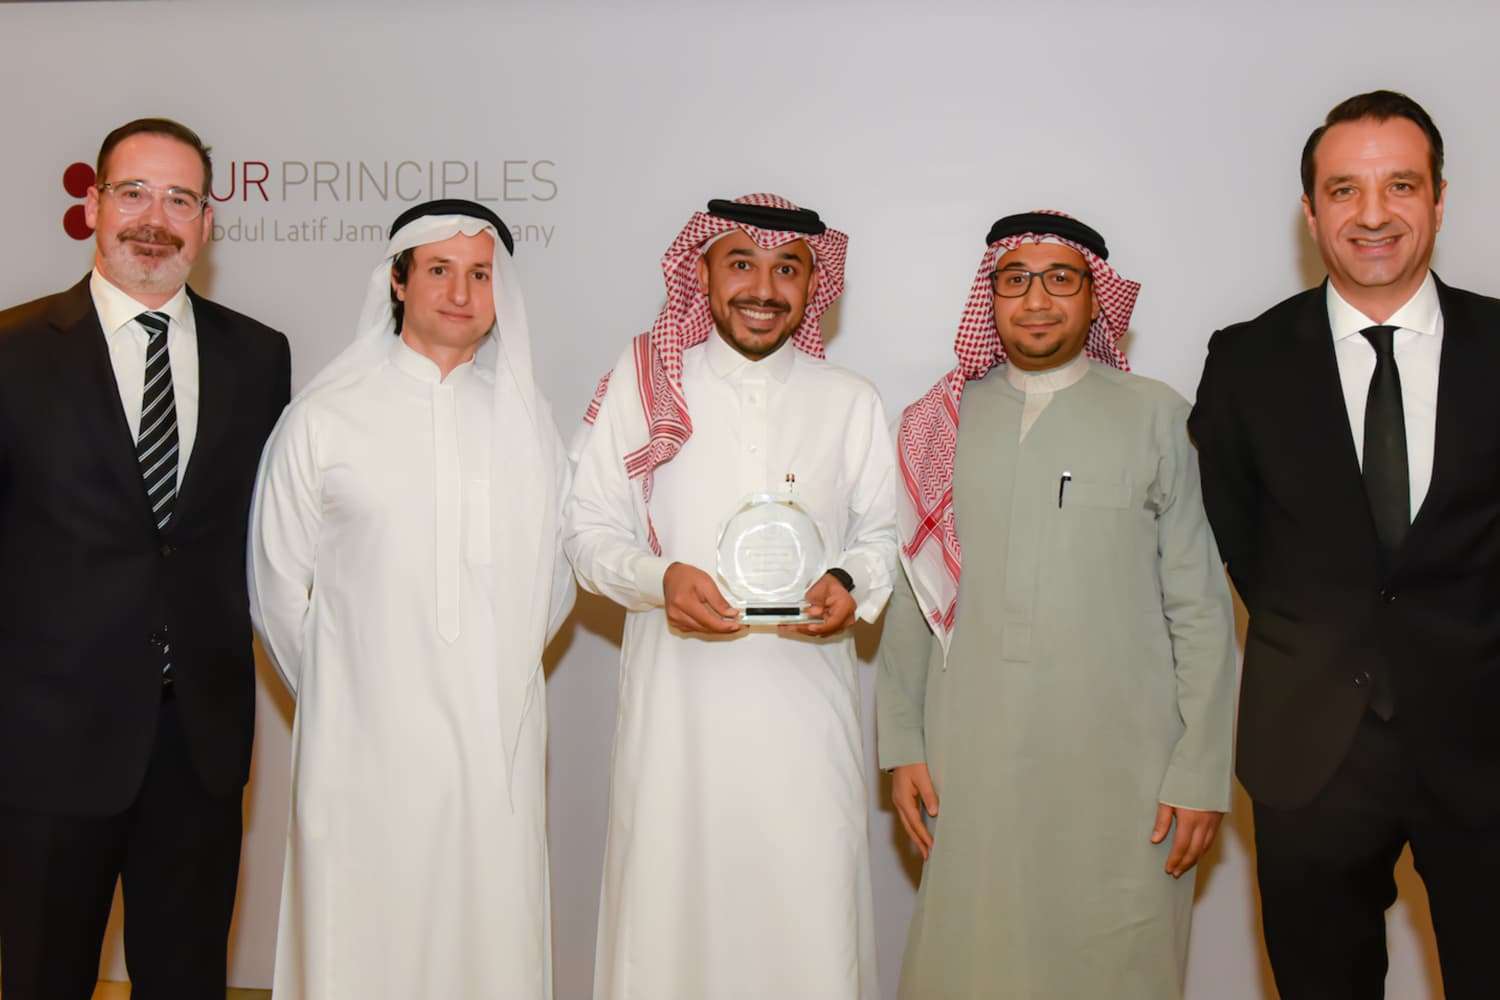 Mr. Murtadha Alalawi and Mr. Abdullah Faisal receiving the 'Lean Transformation' Runner-up Award and representing IKEA Saudi Arabia and Bahrain